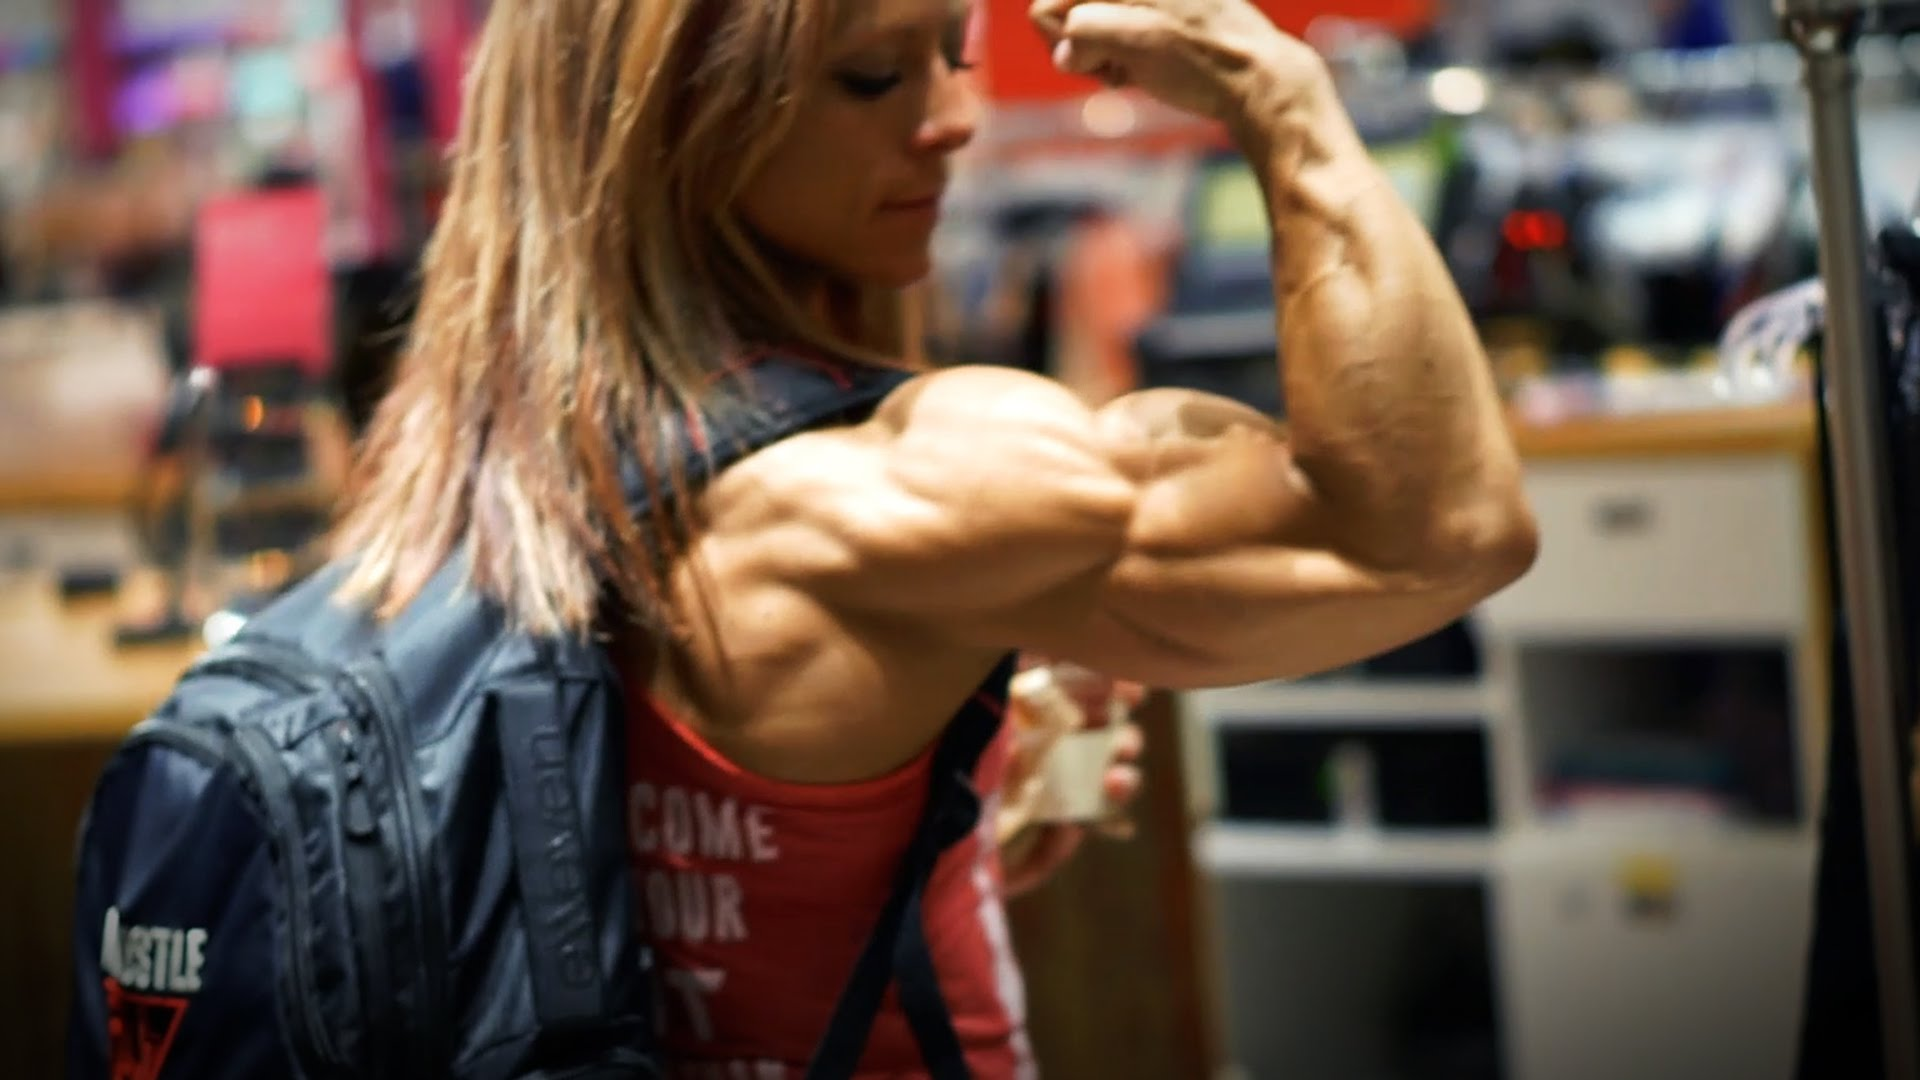 Danielle Reardon – One Week Out To The Ms. Olympia 2016 / Back Workout